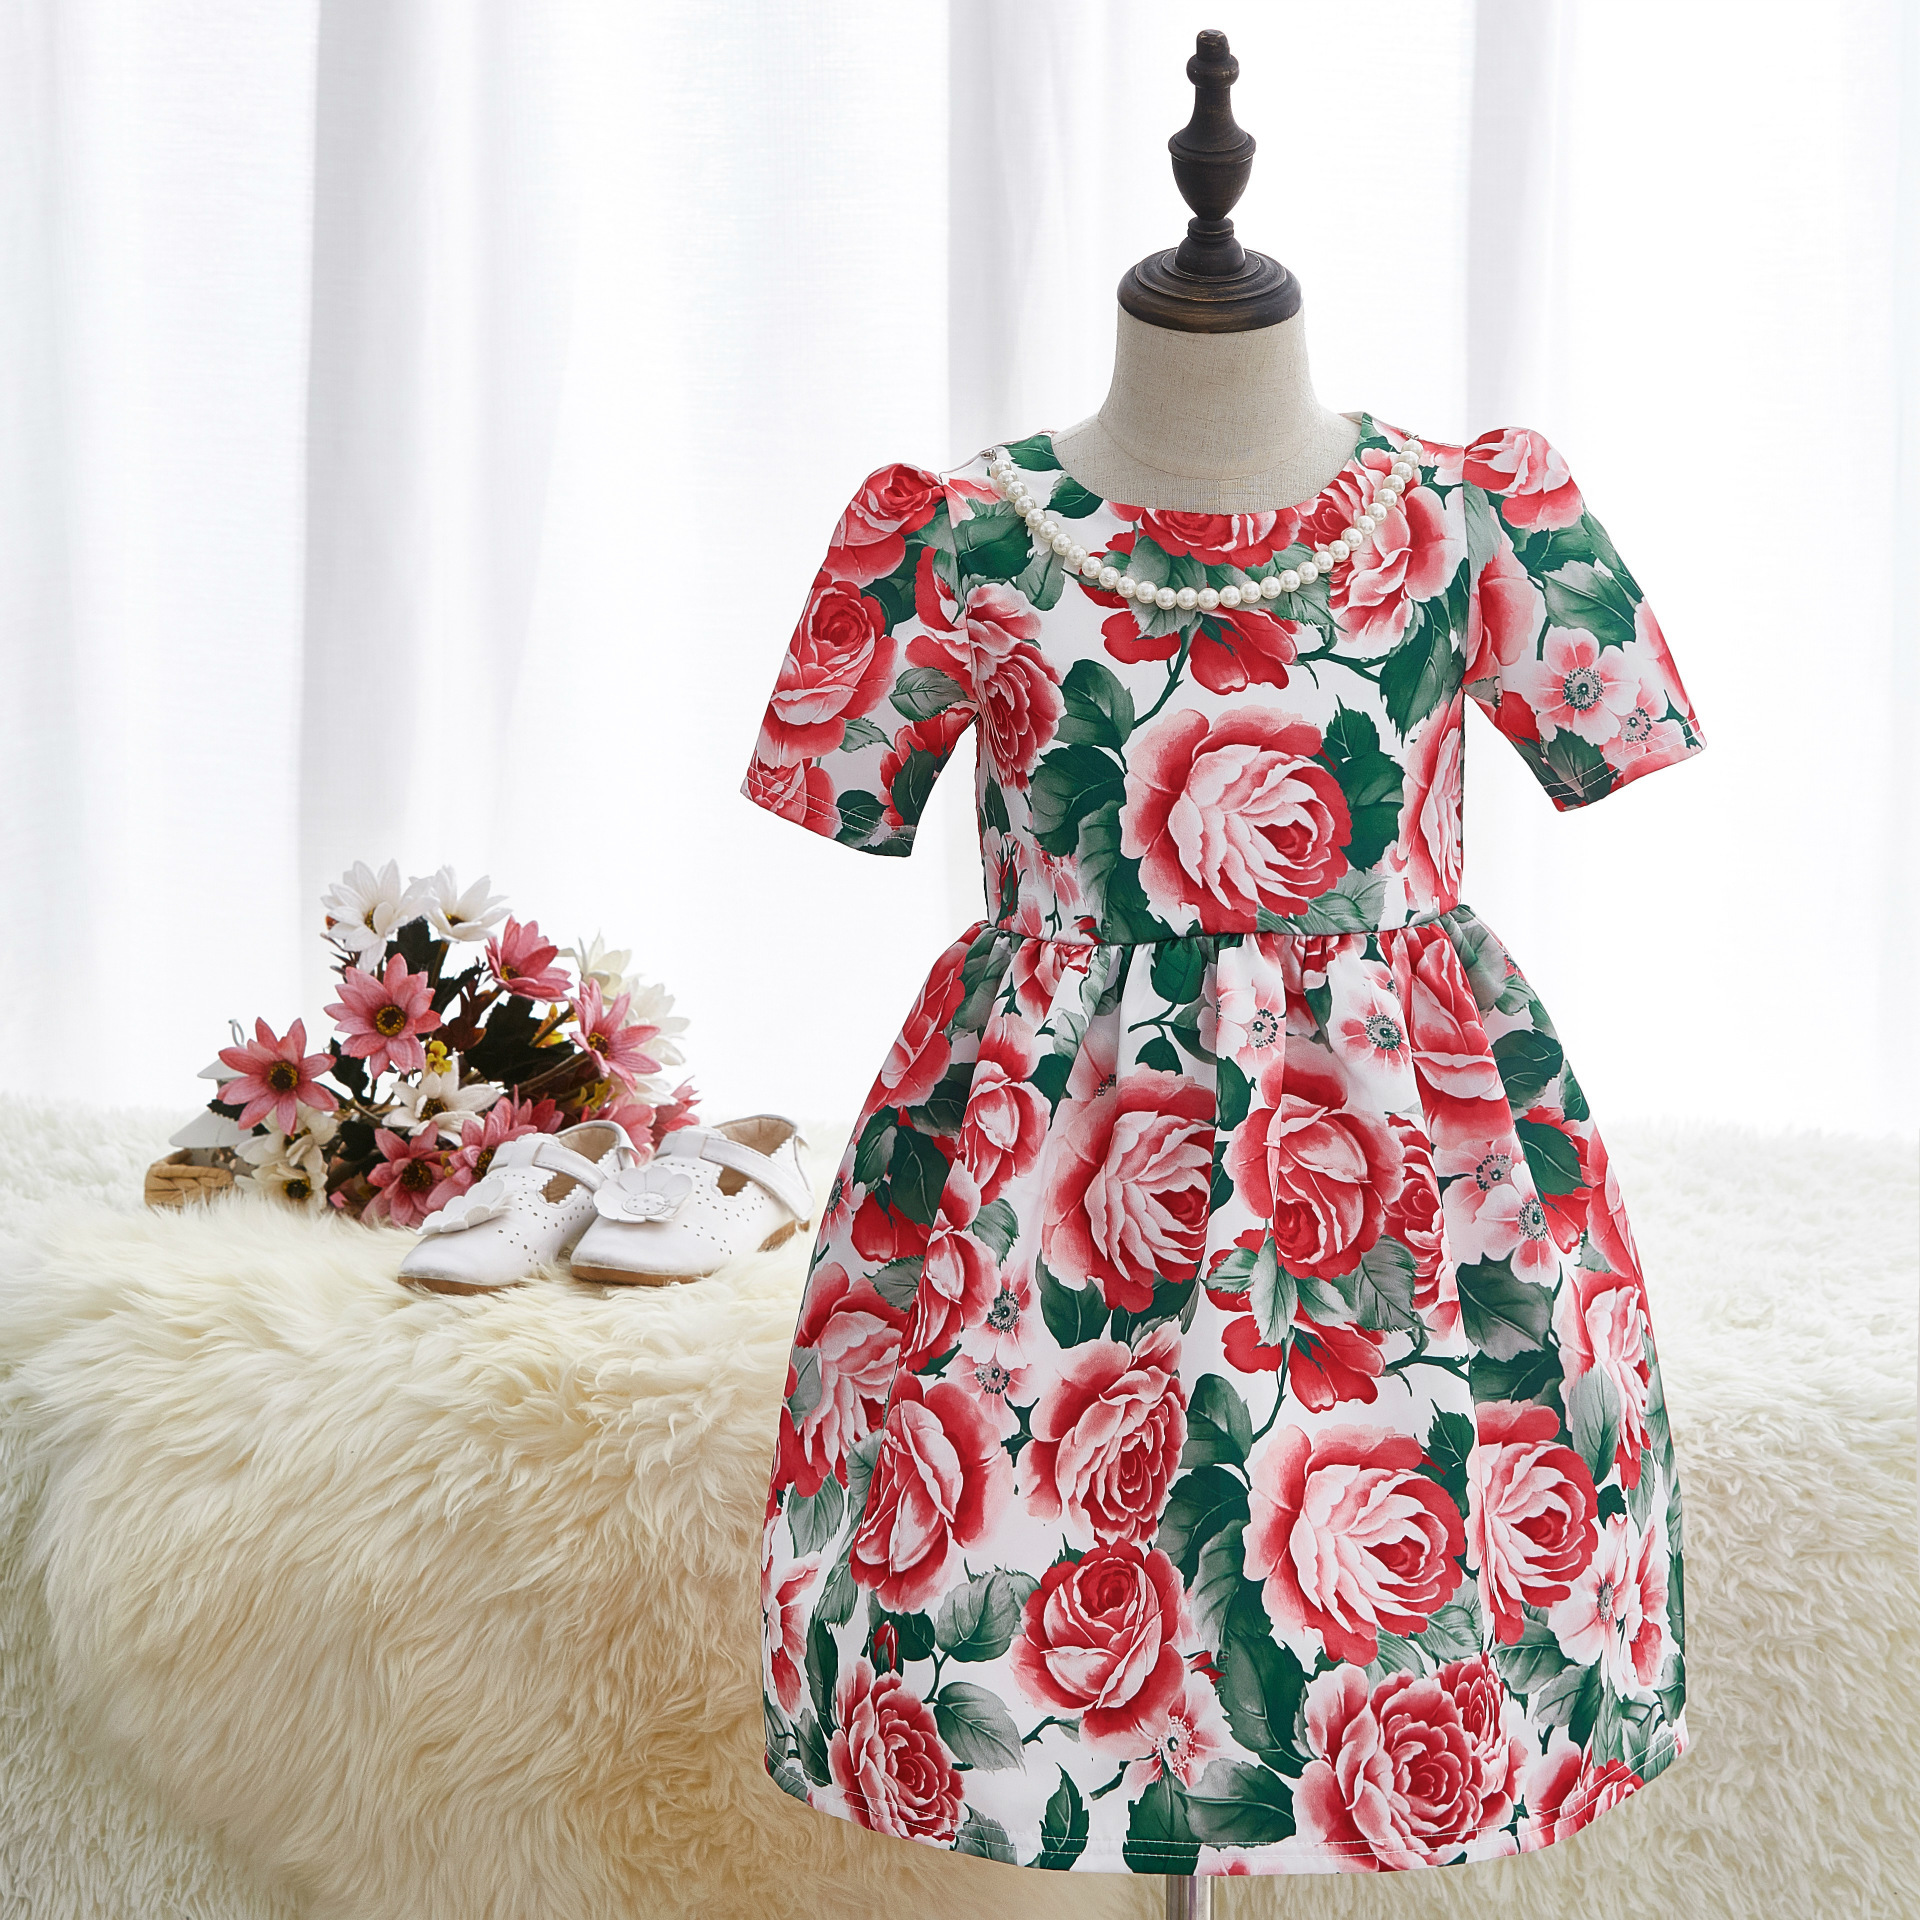 2017 New Girls Dress Cotton Jacquard Summer Spring Children Princess Tutu Dresses European American Lovely Baby Party Girl Dress new arrival children s dress summer spring fall girl princess dress 100% cotton short sleeves girls dress 4 9y